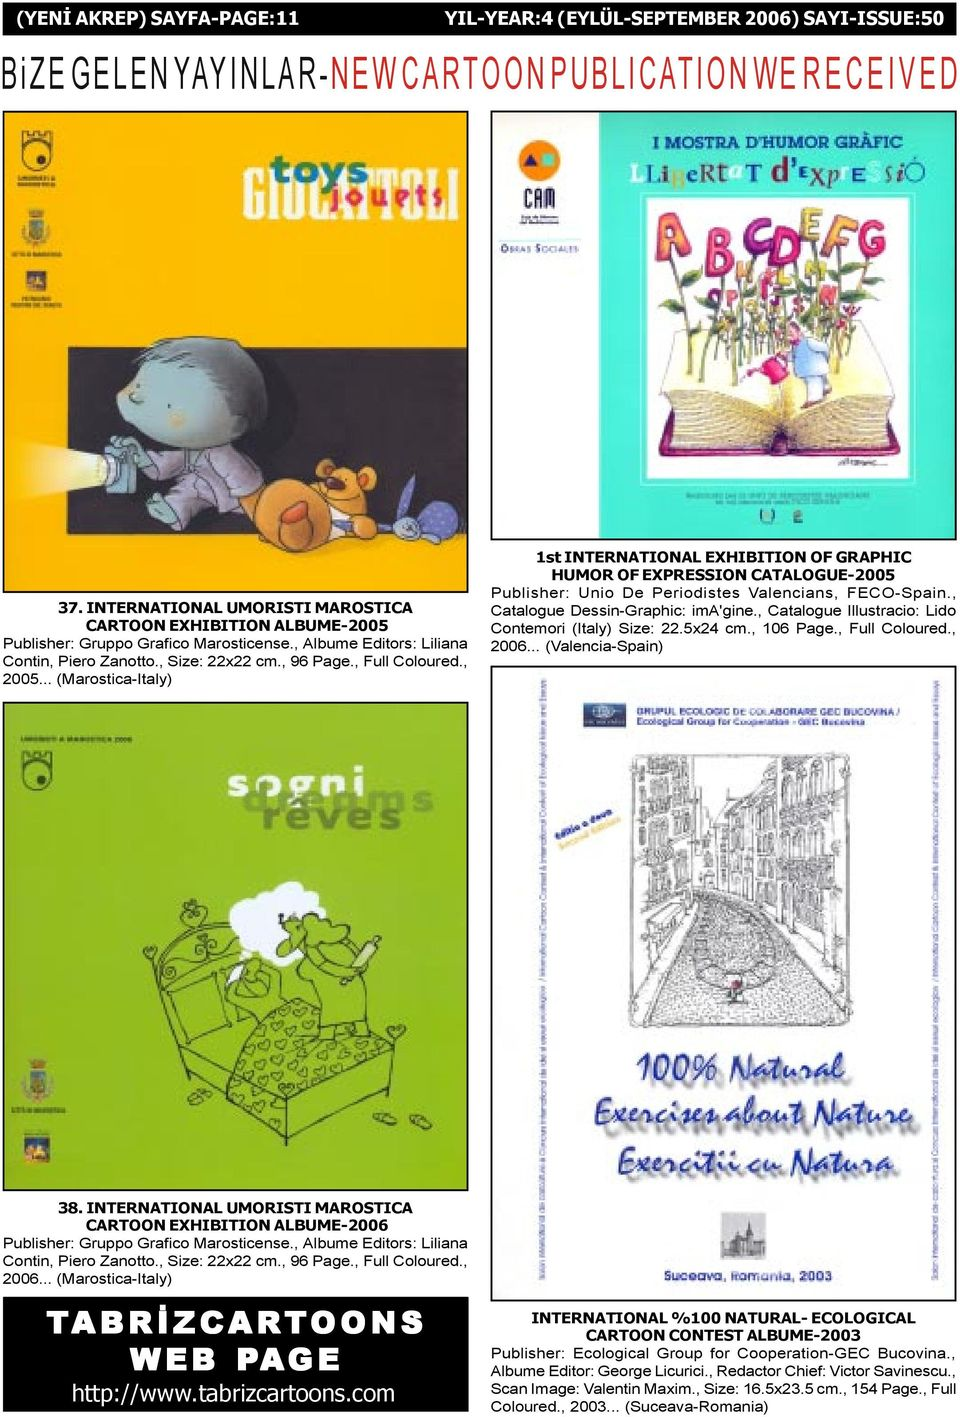 .. (Marostica-Italy) 1st INTERNATIONAL EXHIBITION OF GRAPHIC HUMOR OF EXPRESSION CATALOGUE-2005 Publisher: Unio De Periodistes Valencians, FECO-Spain., Catalogue Dessin-Graphic: ima'gine.